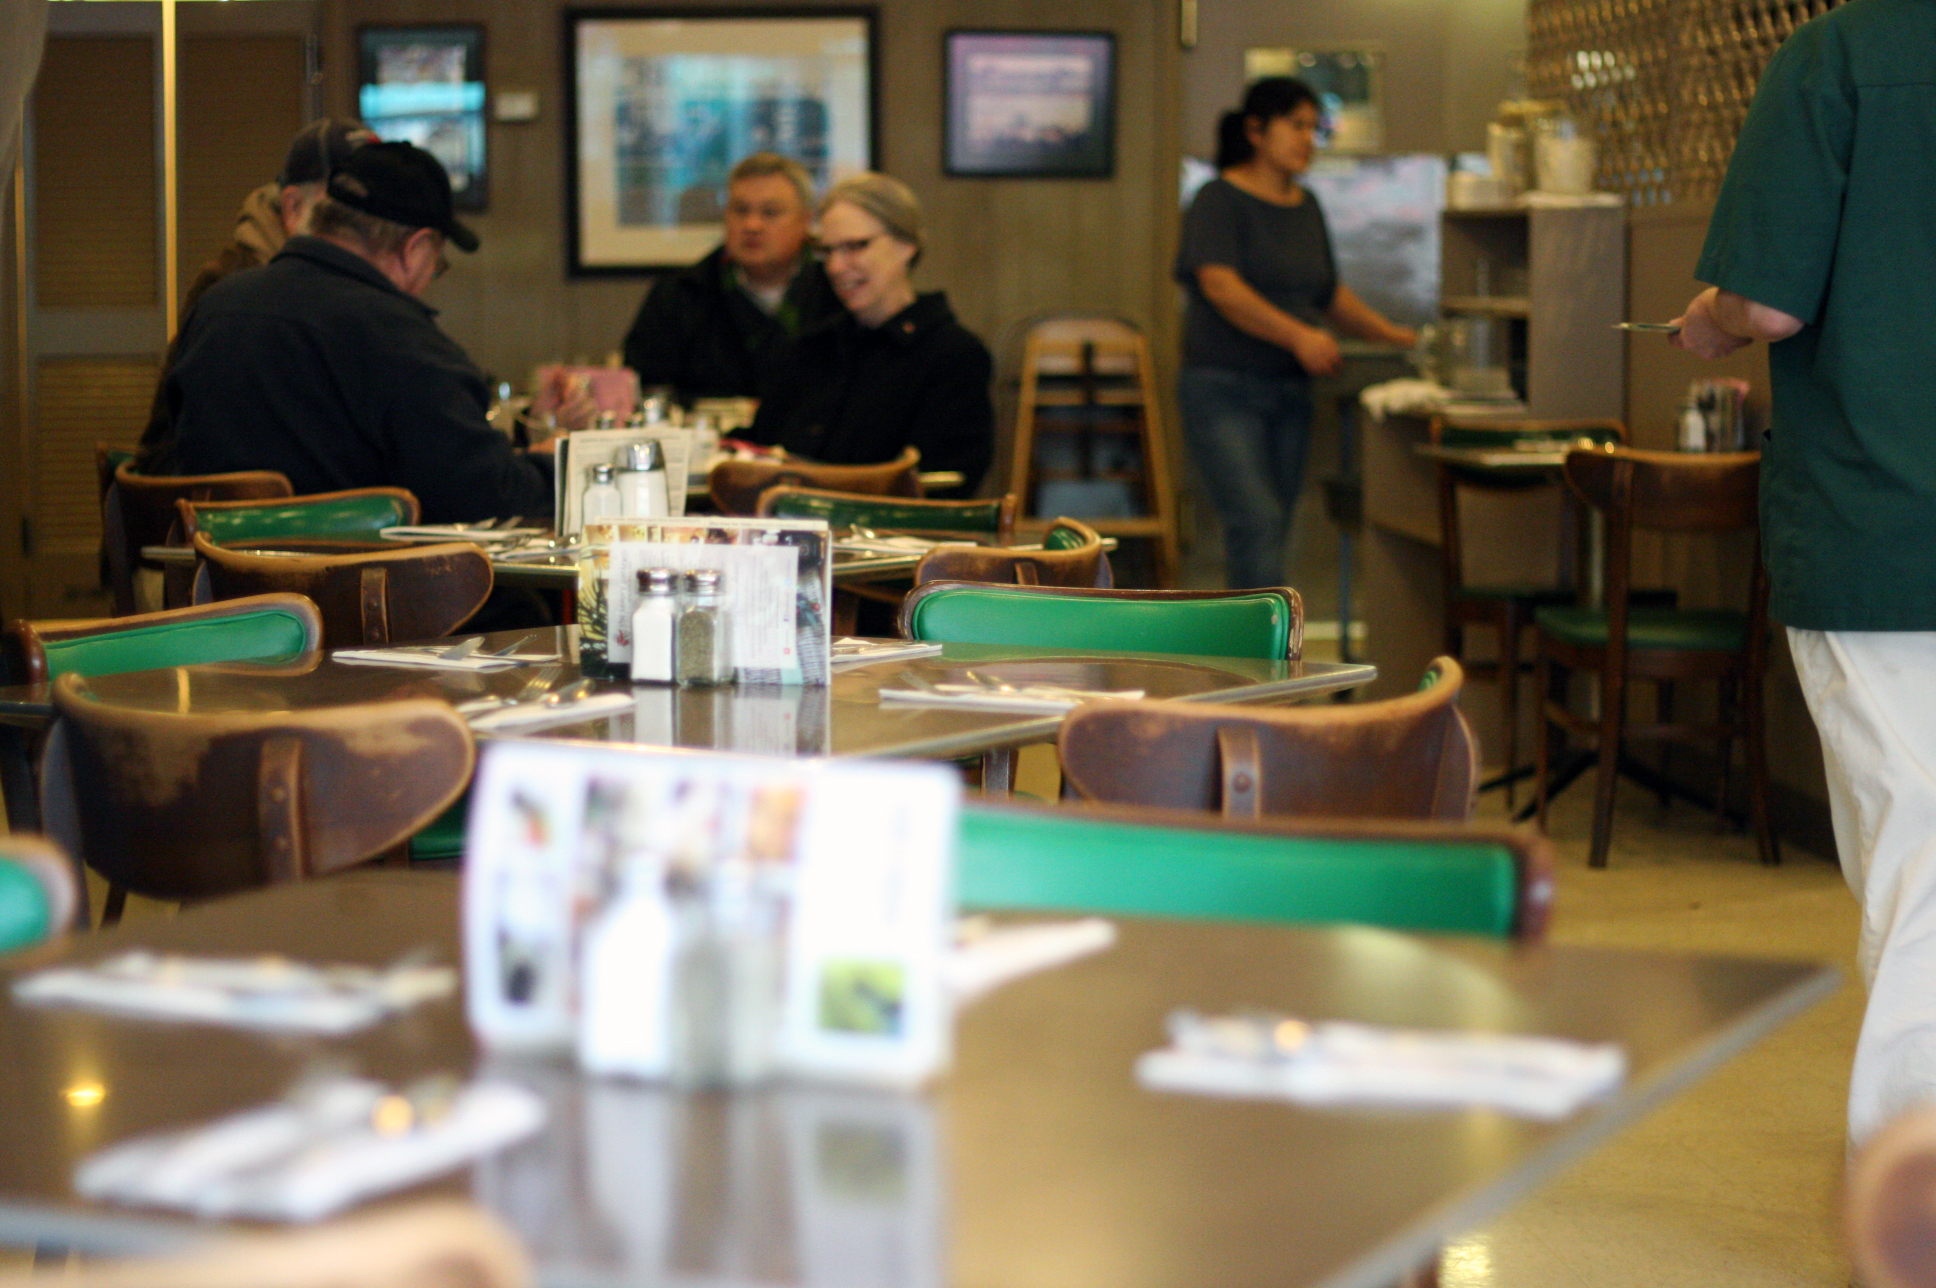 The Pancake Shop maintains an authentic atmosphere reminiscent of the early days of diner popularity...